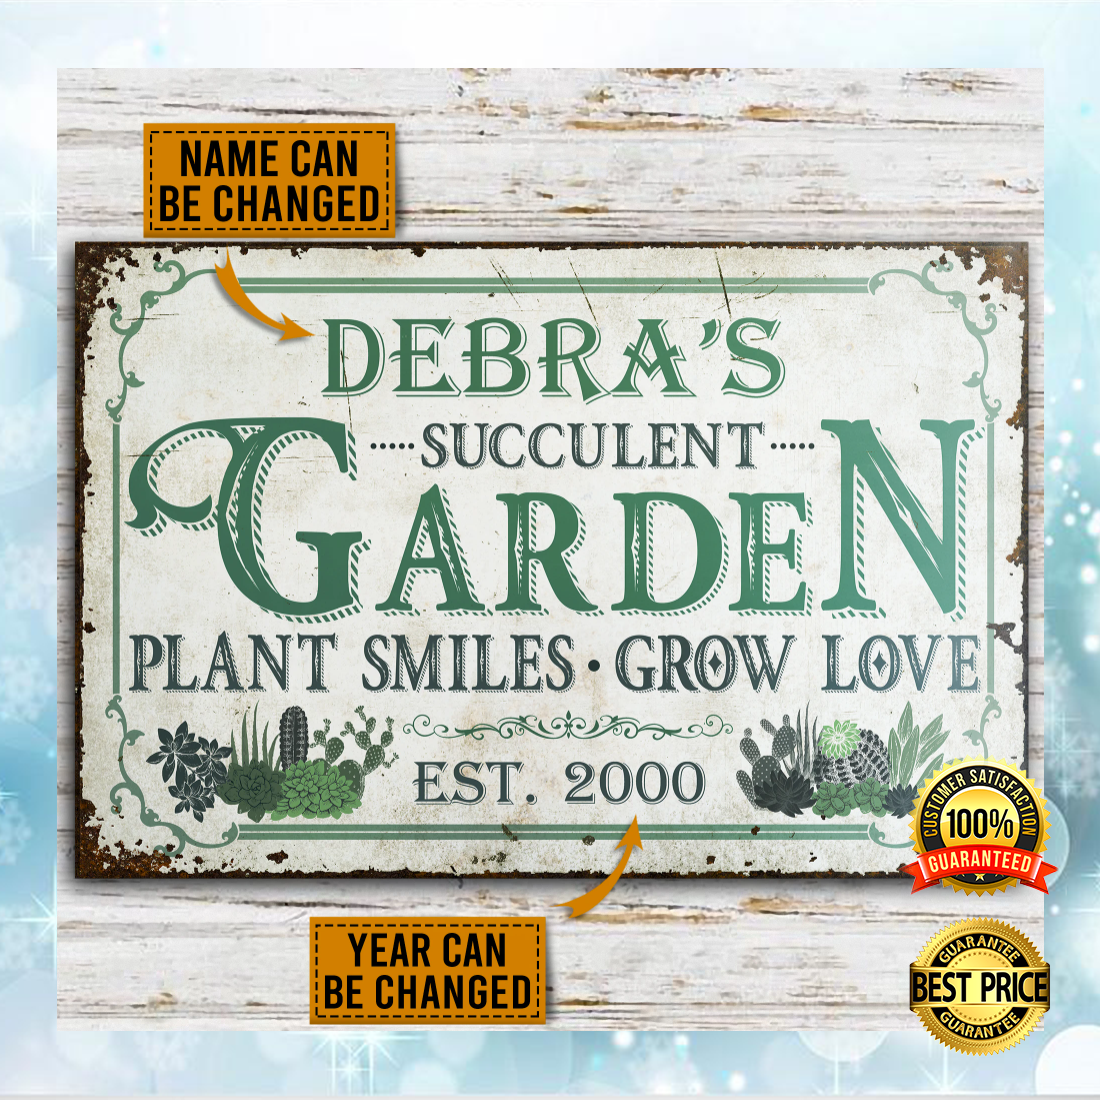 PERSONALIZED SUCCULENT GARDEN PLANT SMILES GROW LOVE POSTER 4